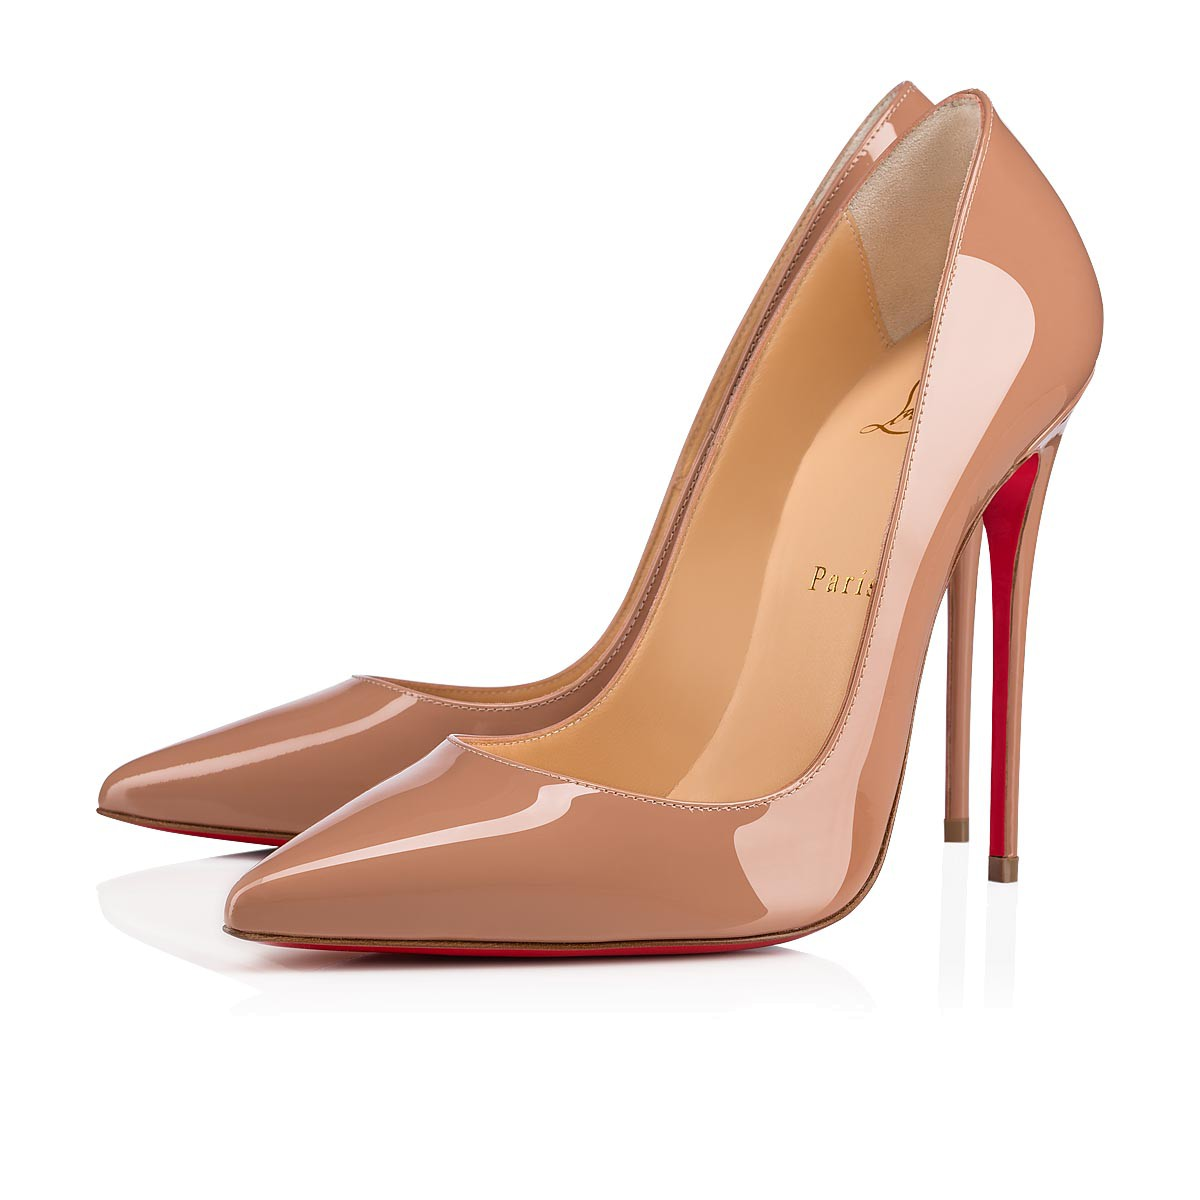 d68ce1c4a855 So Kate 120 Nude Patent Leather - Women Shoes - Christian Louboutin